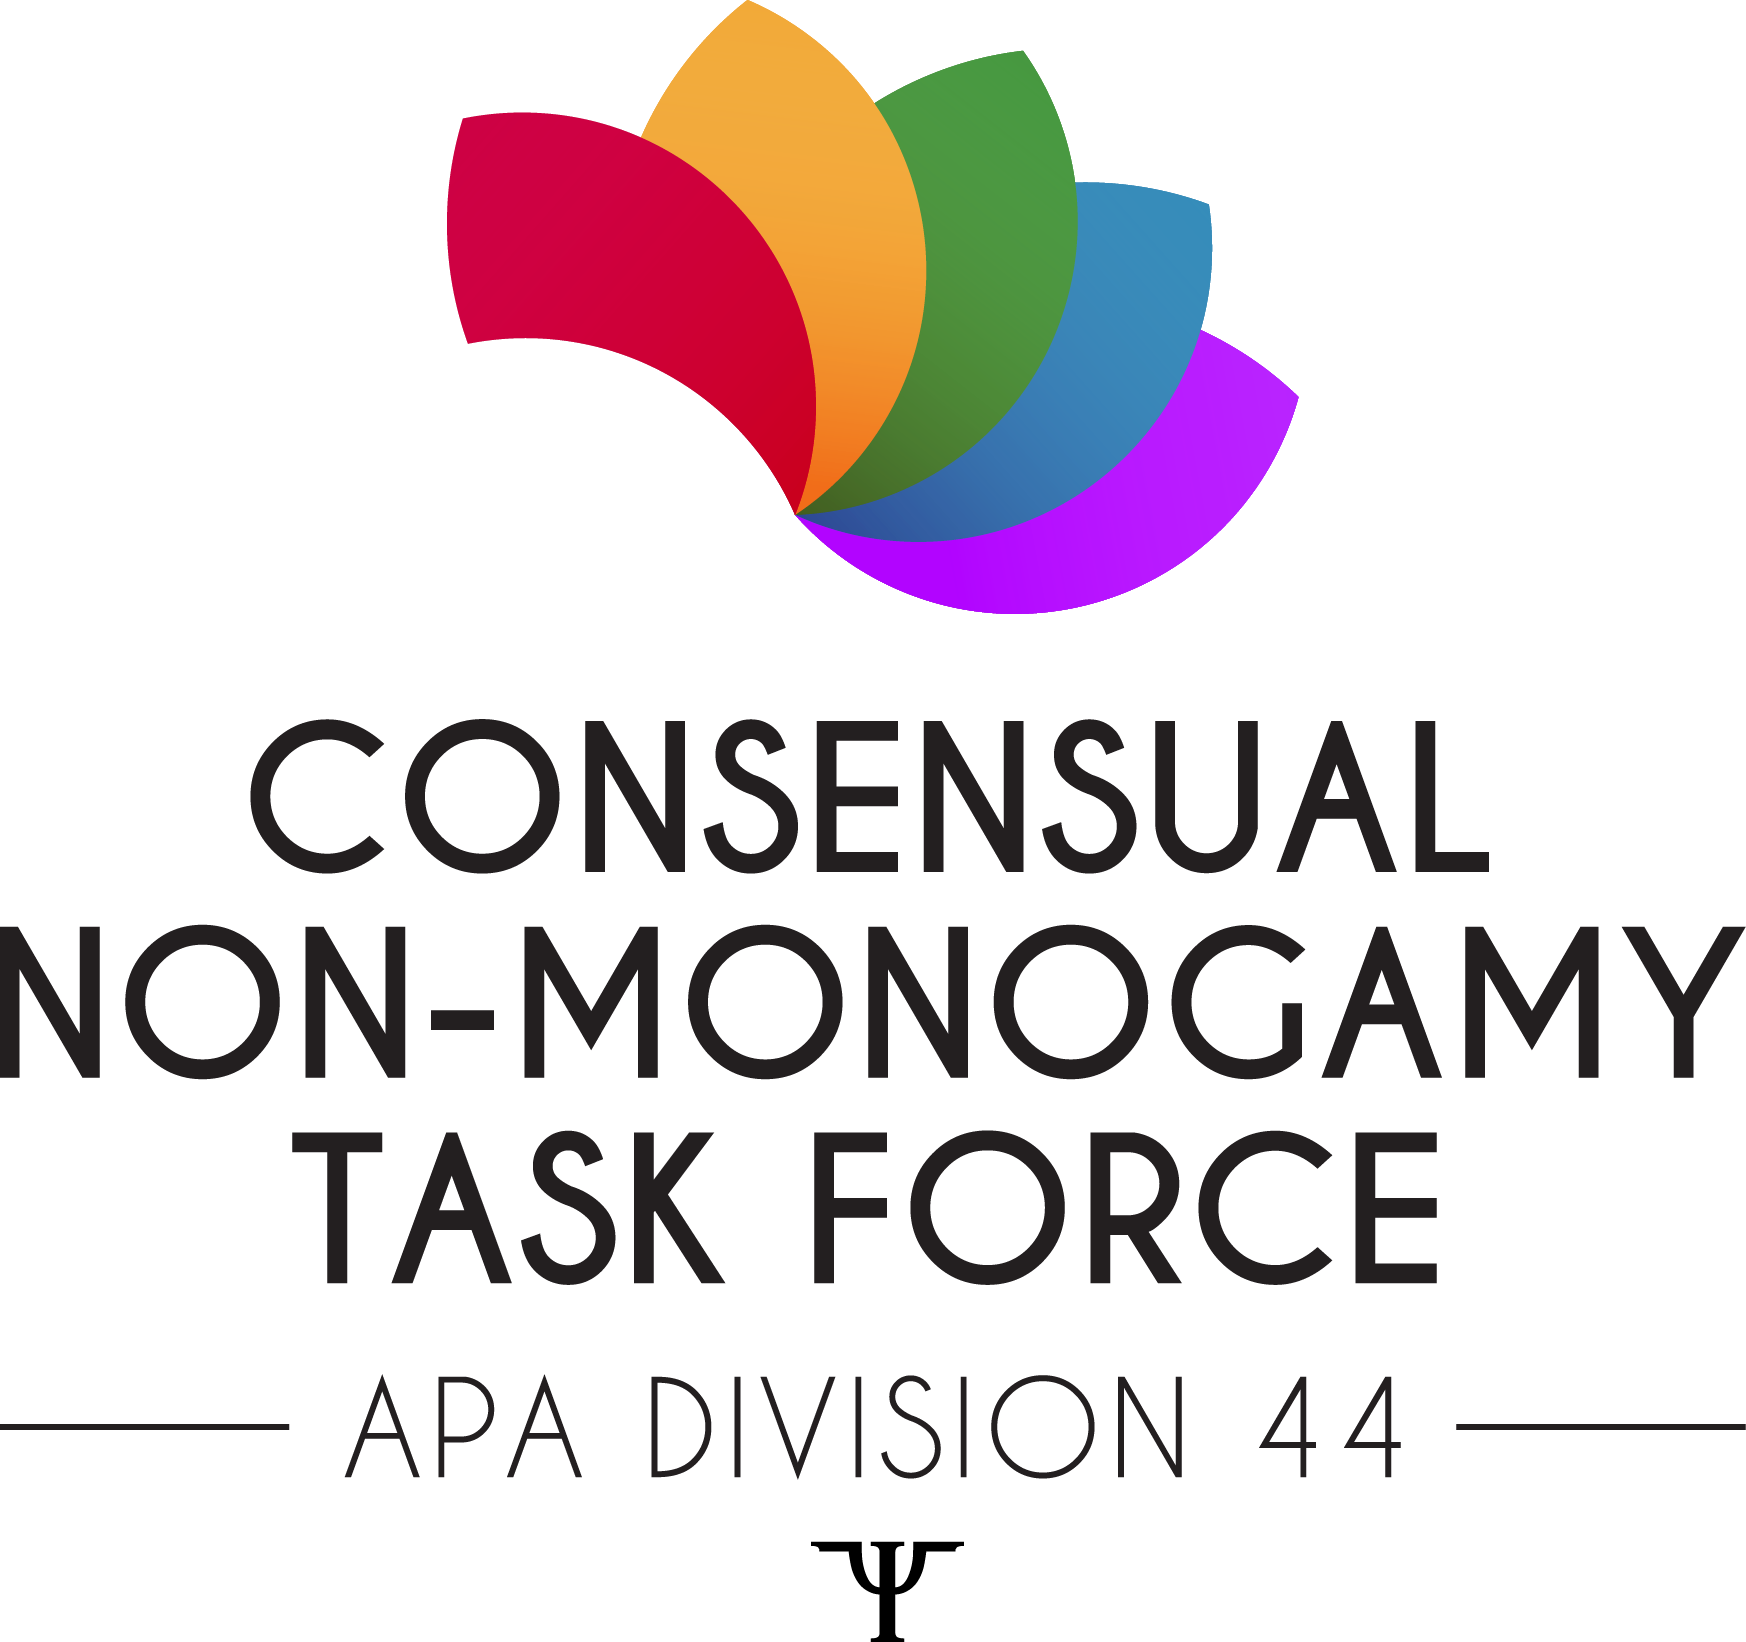 Centre - Consensual Non-Monogamy Task Force.png